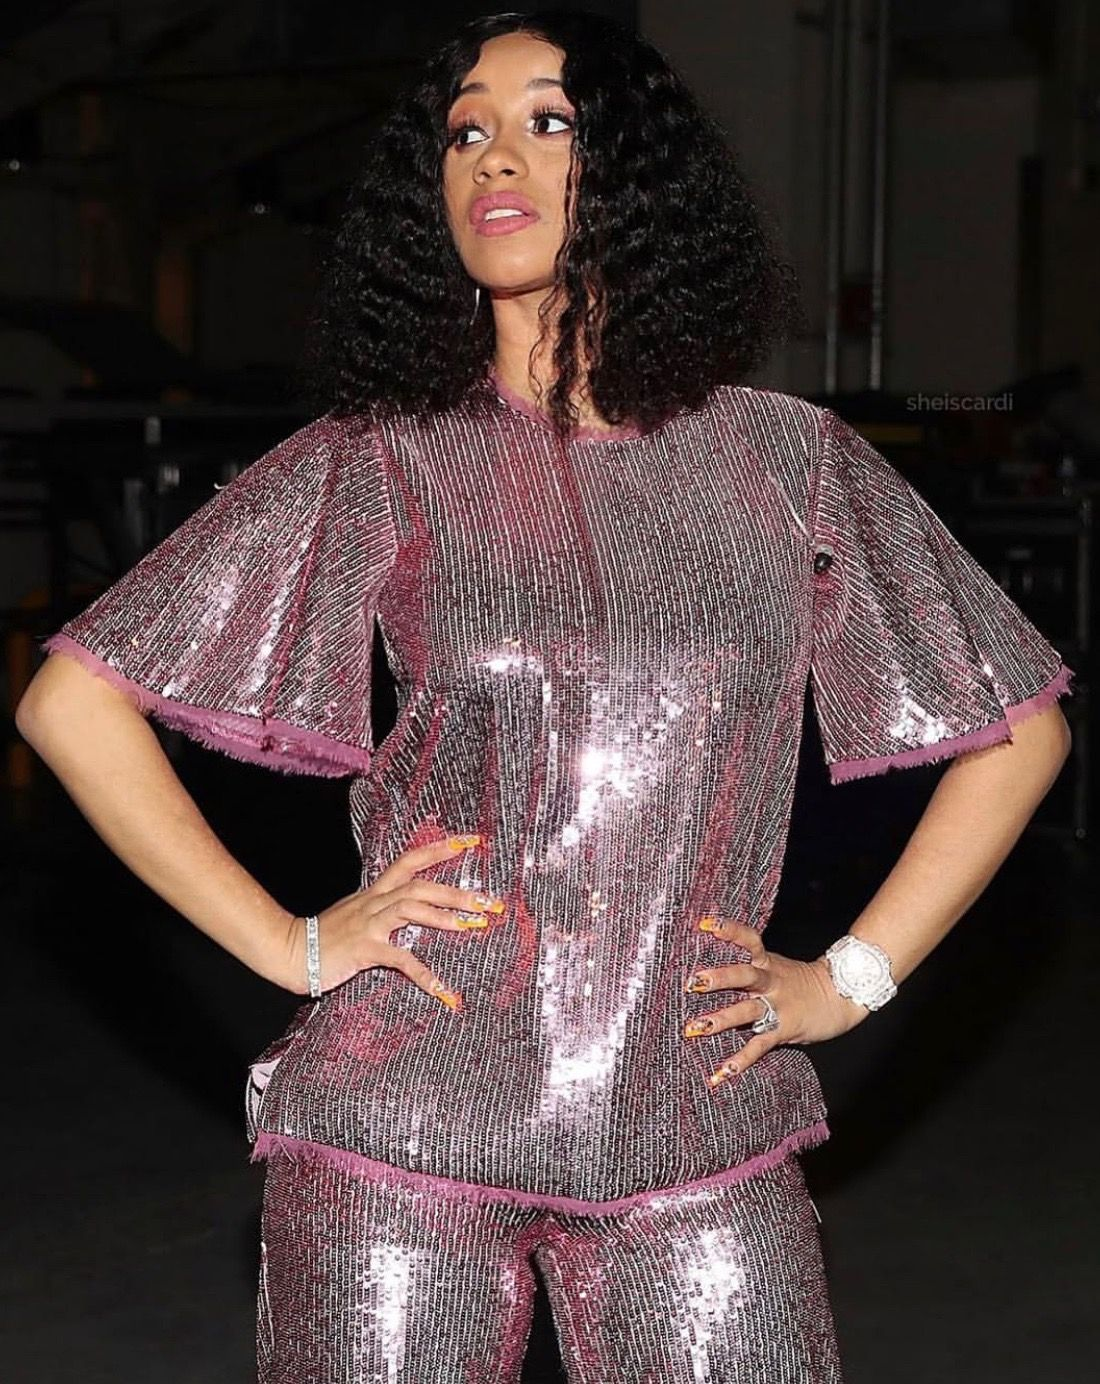 Cardi b cardi b pinterest baddie and fashion